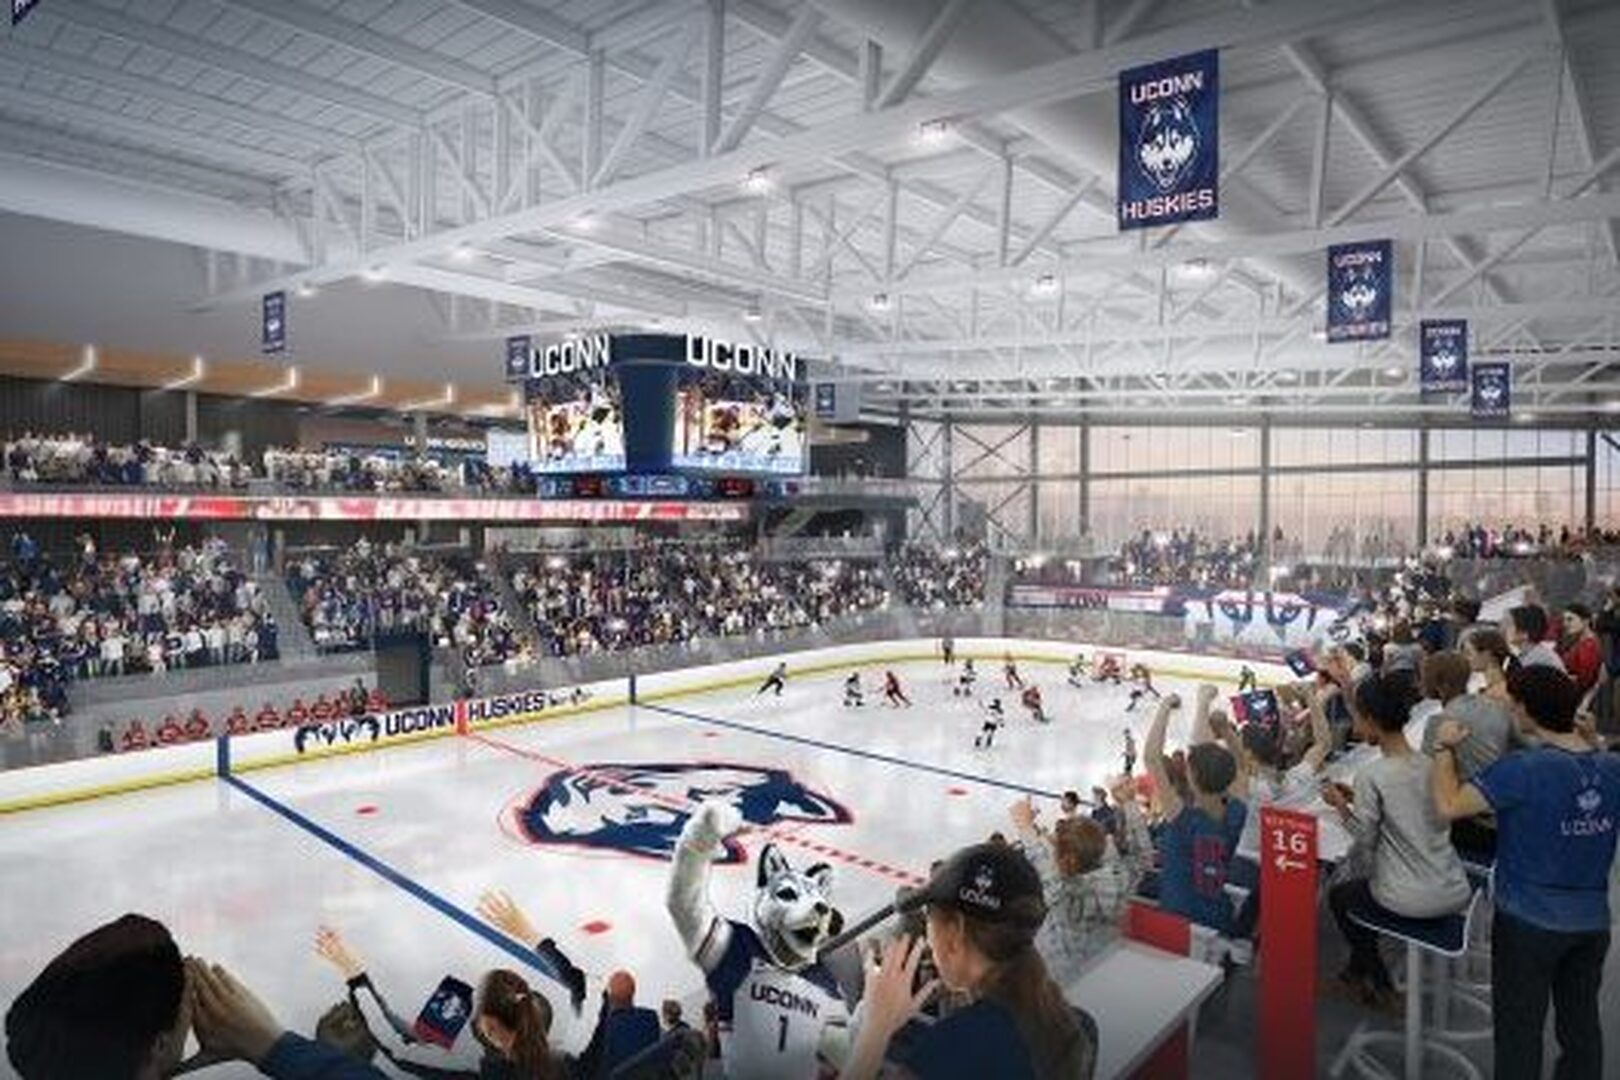 UConn to start construction on new $70 million arena for men's, women's college hockey teams, set to open fall of 2022